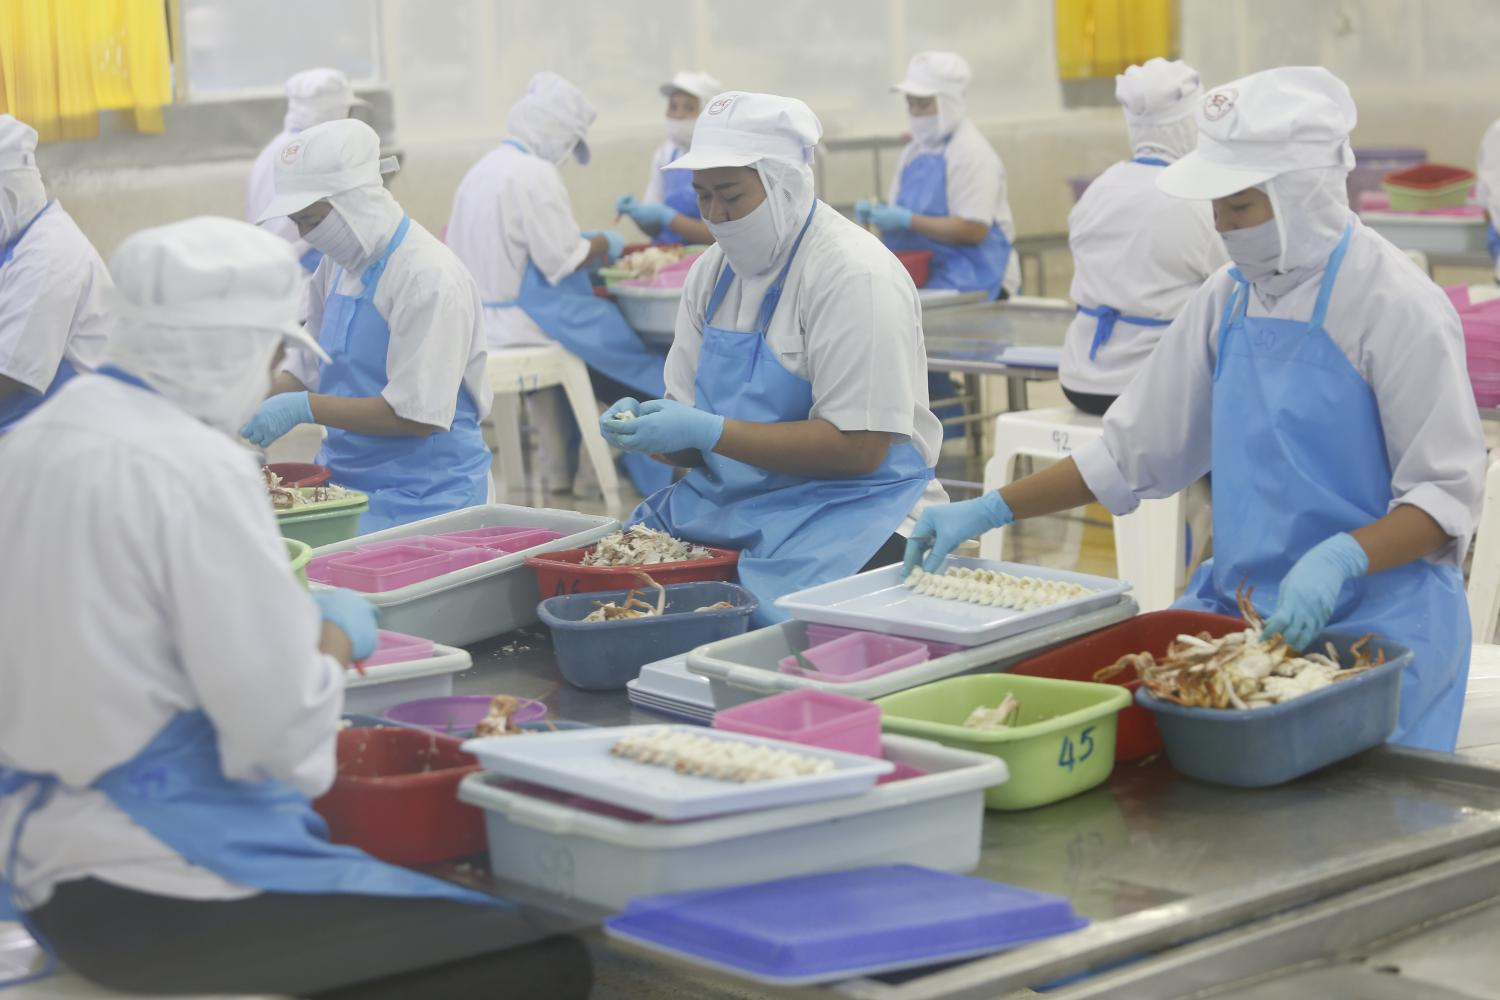 Food factories rely heavily on intensive labour, so the recent wage hike has led many companies to postpone expansion and recruitment. (Photo by Pattarapong Chatpattarasill)